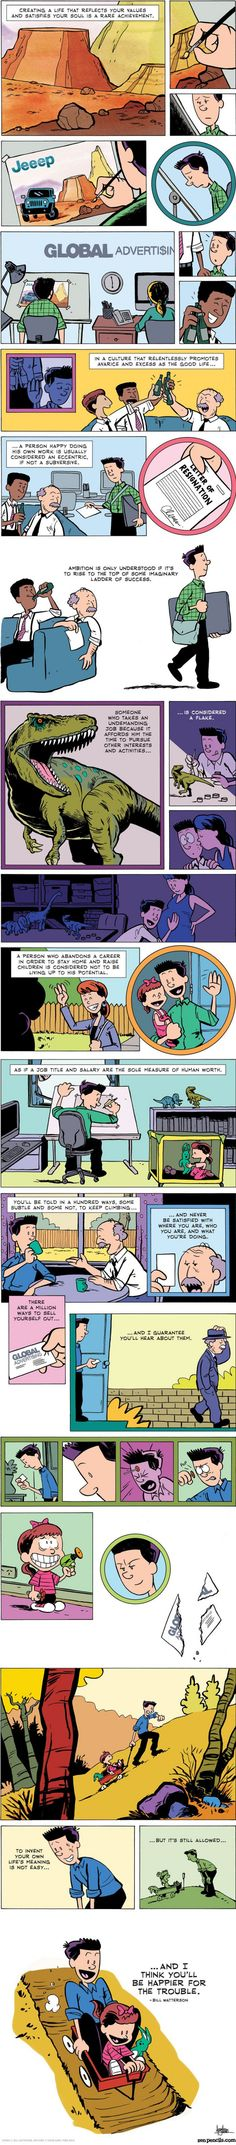 Illustrated Advice From Bill Watterson (Creator of Calvin and Hobbes)